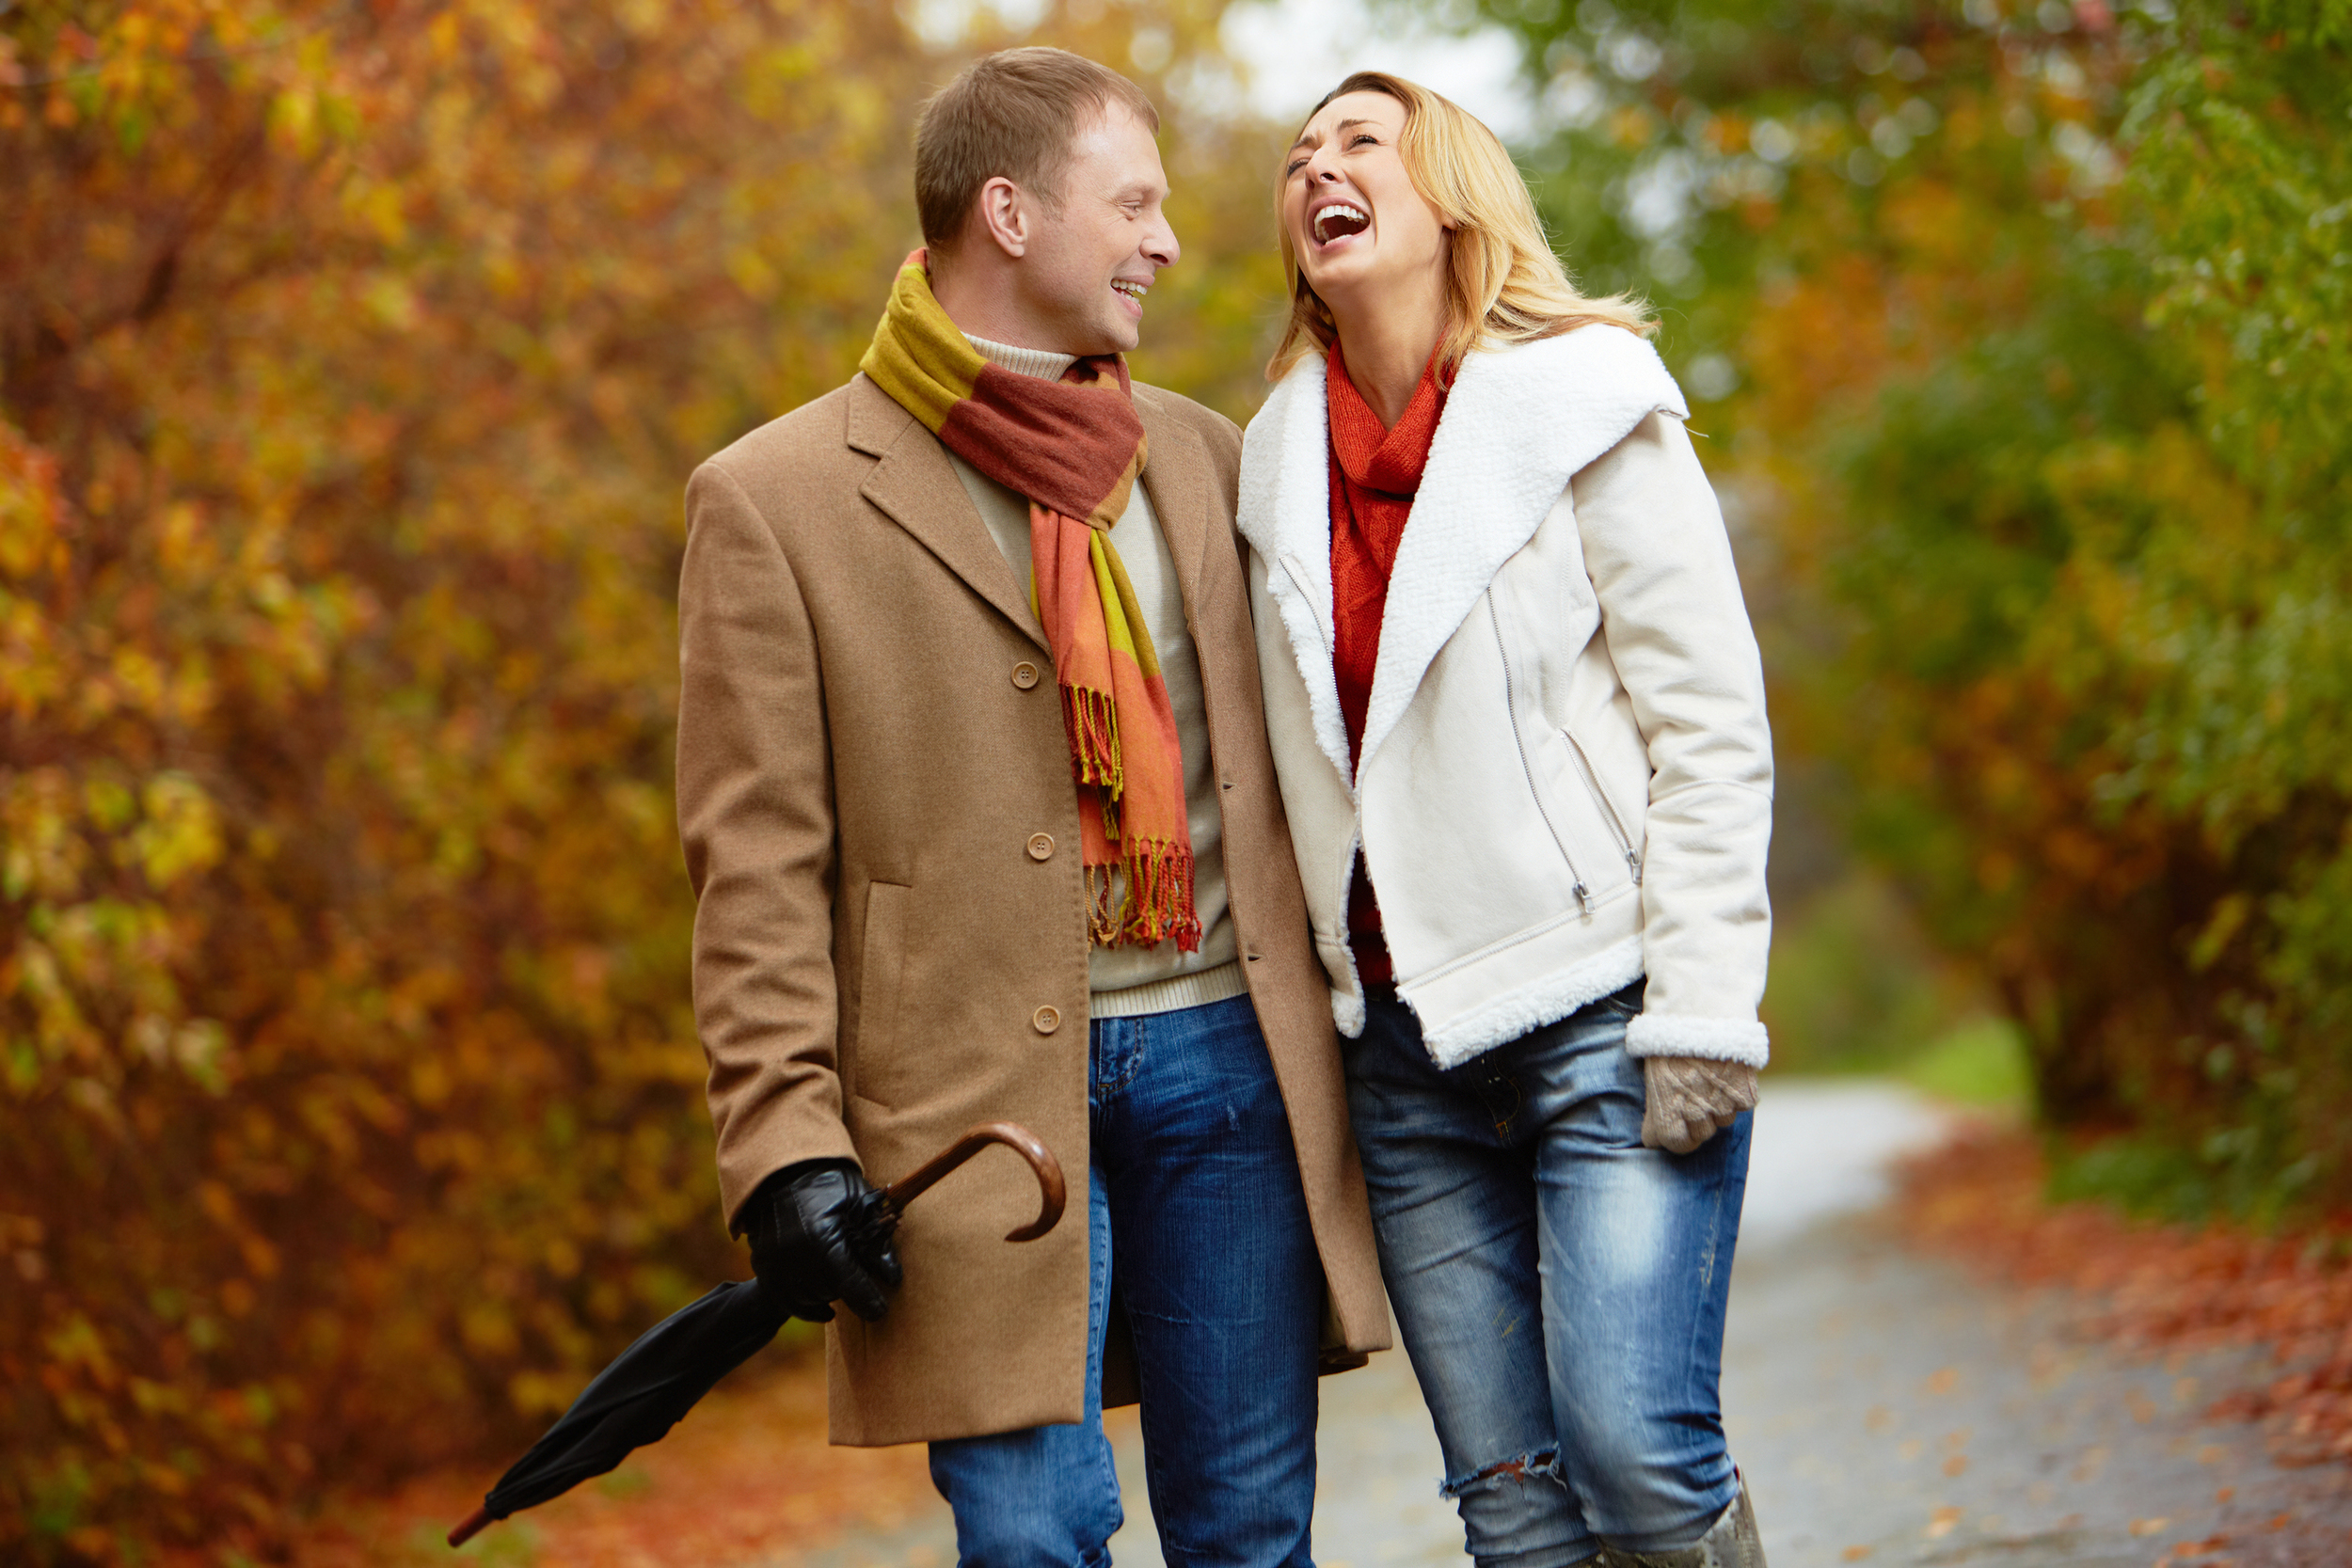 bigstock-Portrait-of-ecstatic-couple-du-48991541.jpg